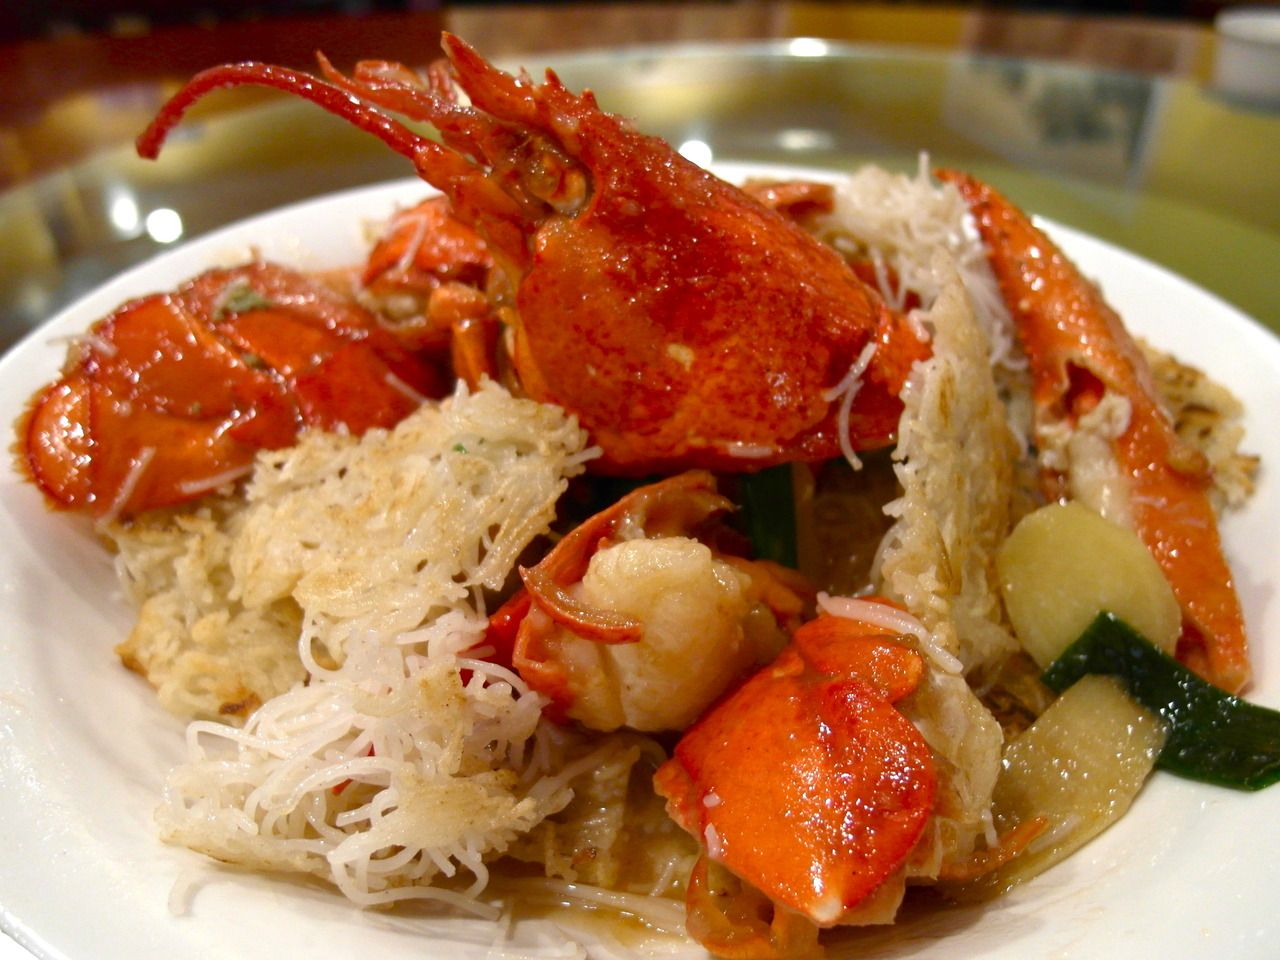 Sauteed lobster with pan-fried thin rice noodles 龍蝦煎米粉. Awesome pairing.